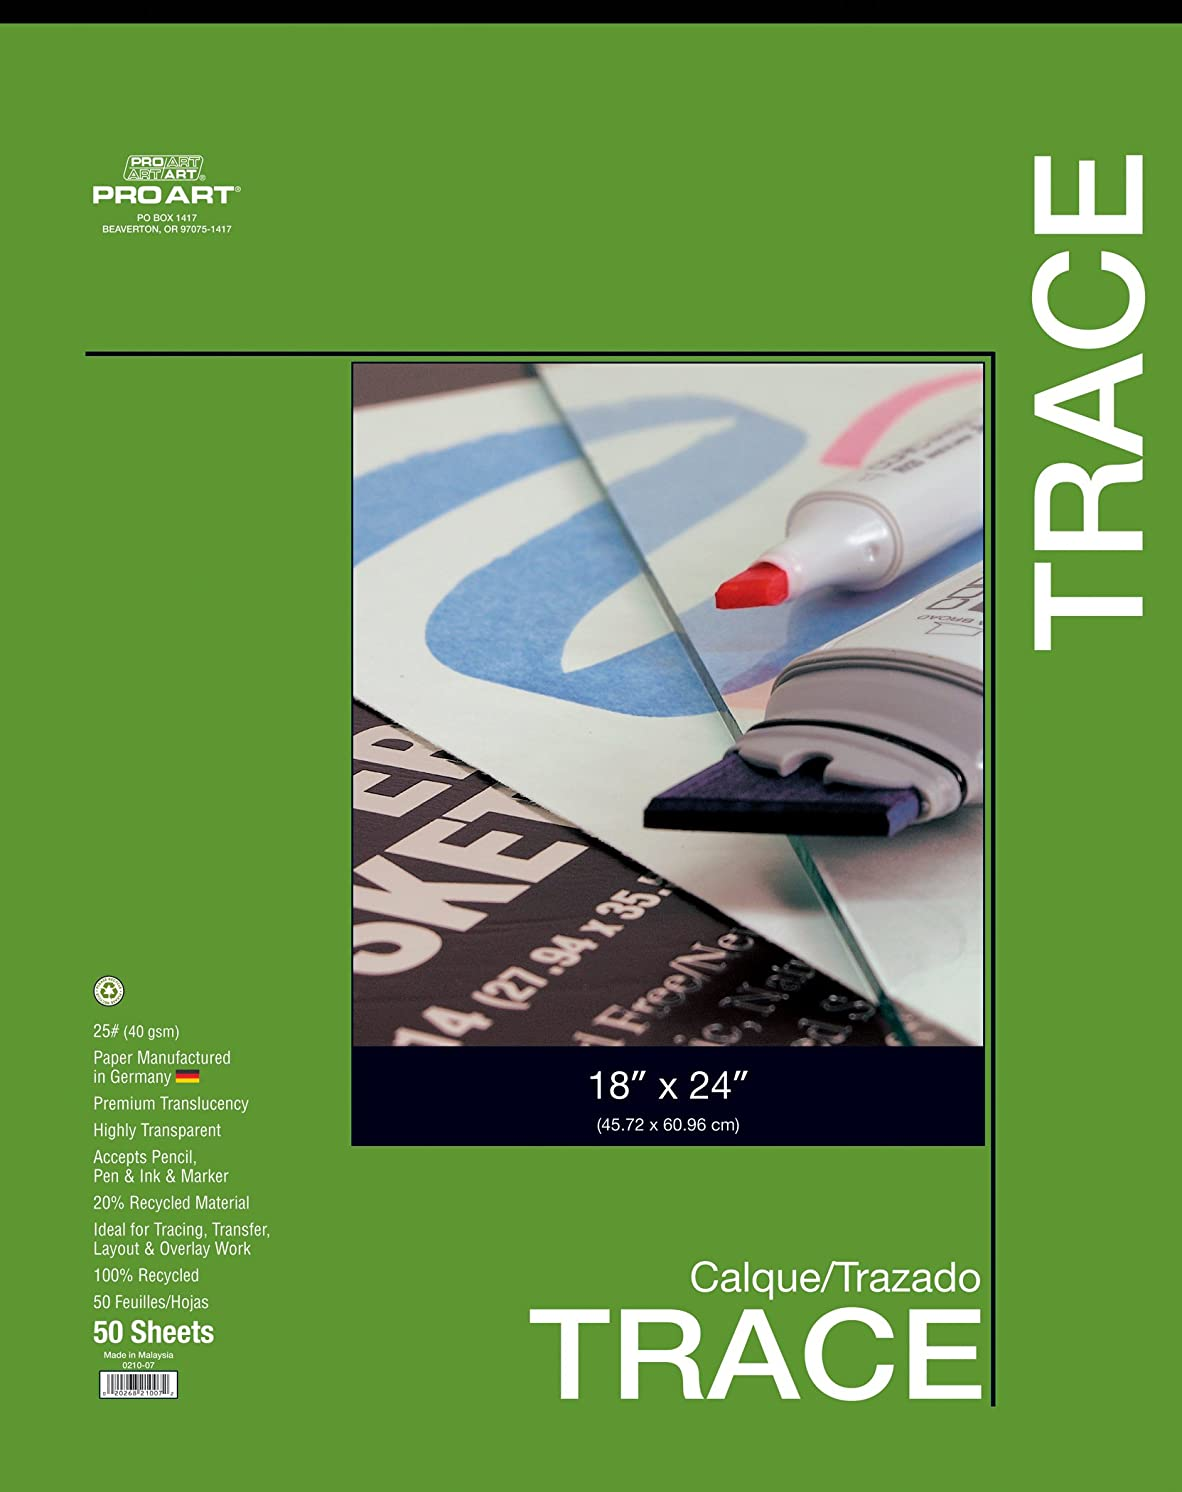 PRO ART 19-Inch by 24-Inch Tracing Pad